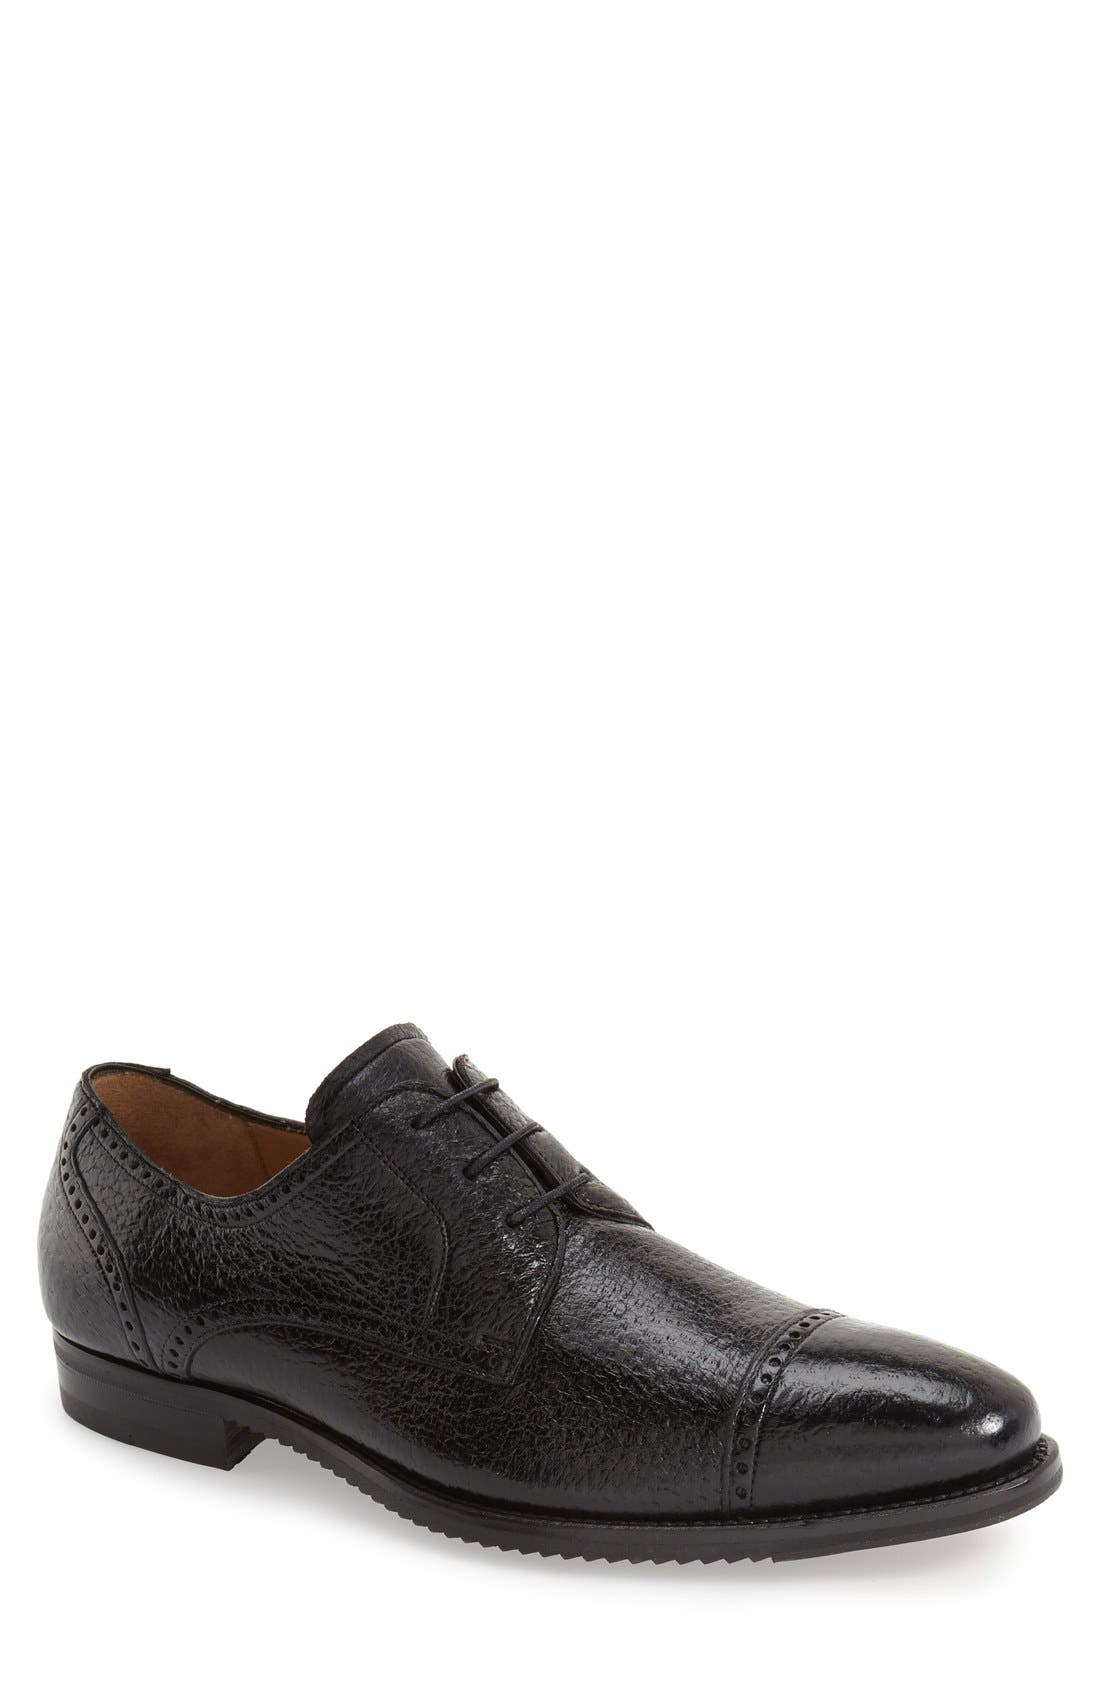 'Capri' Cap Toe Derby,                         Main,                         color, BLACK